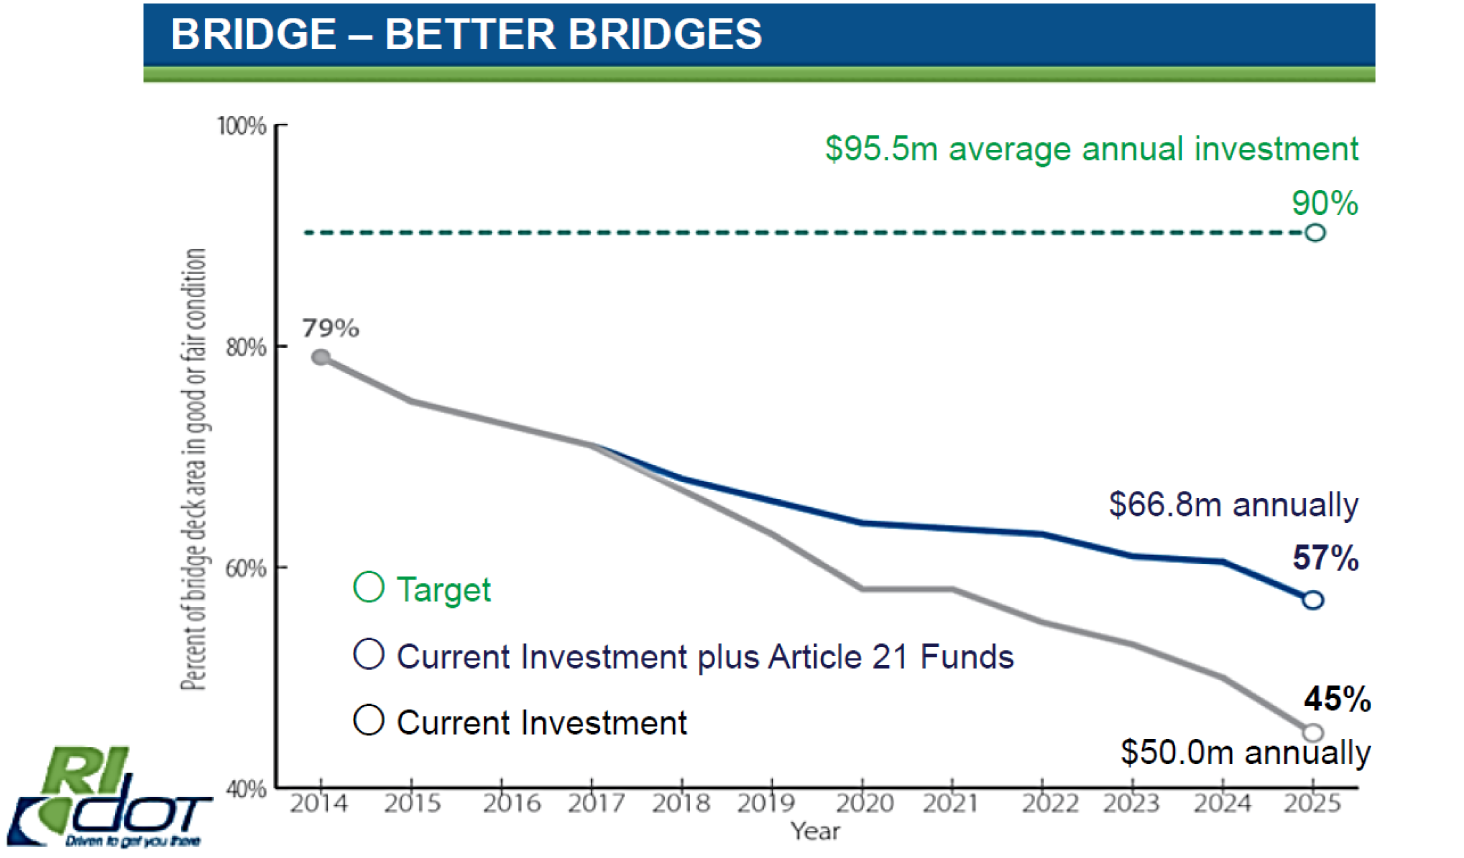 Bridge - better roads. Target is 90 percent of bridge deck in good or fair condition, which requires $95.5 million average annual investment. Current investment plus Article 21 Funds is $66.8 million annually (giving 57% good or fair condition), and current levels are $50 million annually (giving 45% good or fair condition).